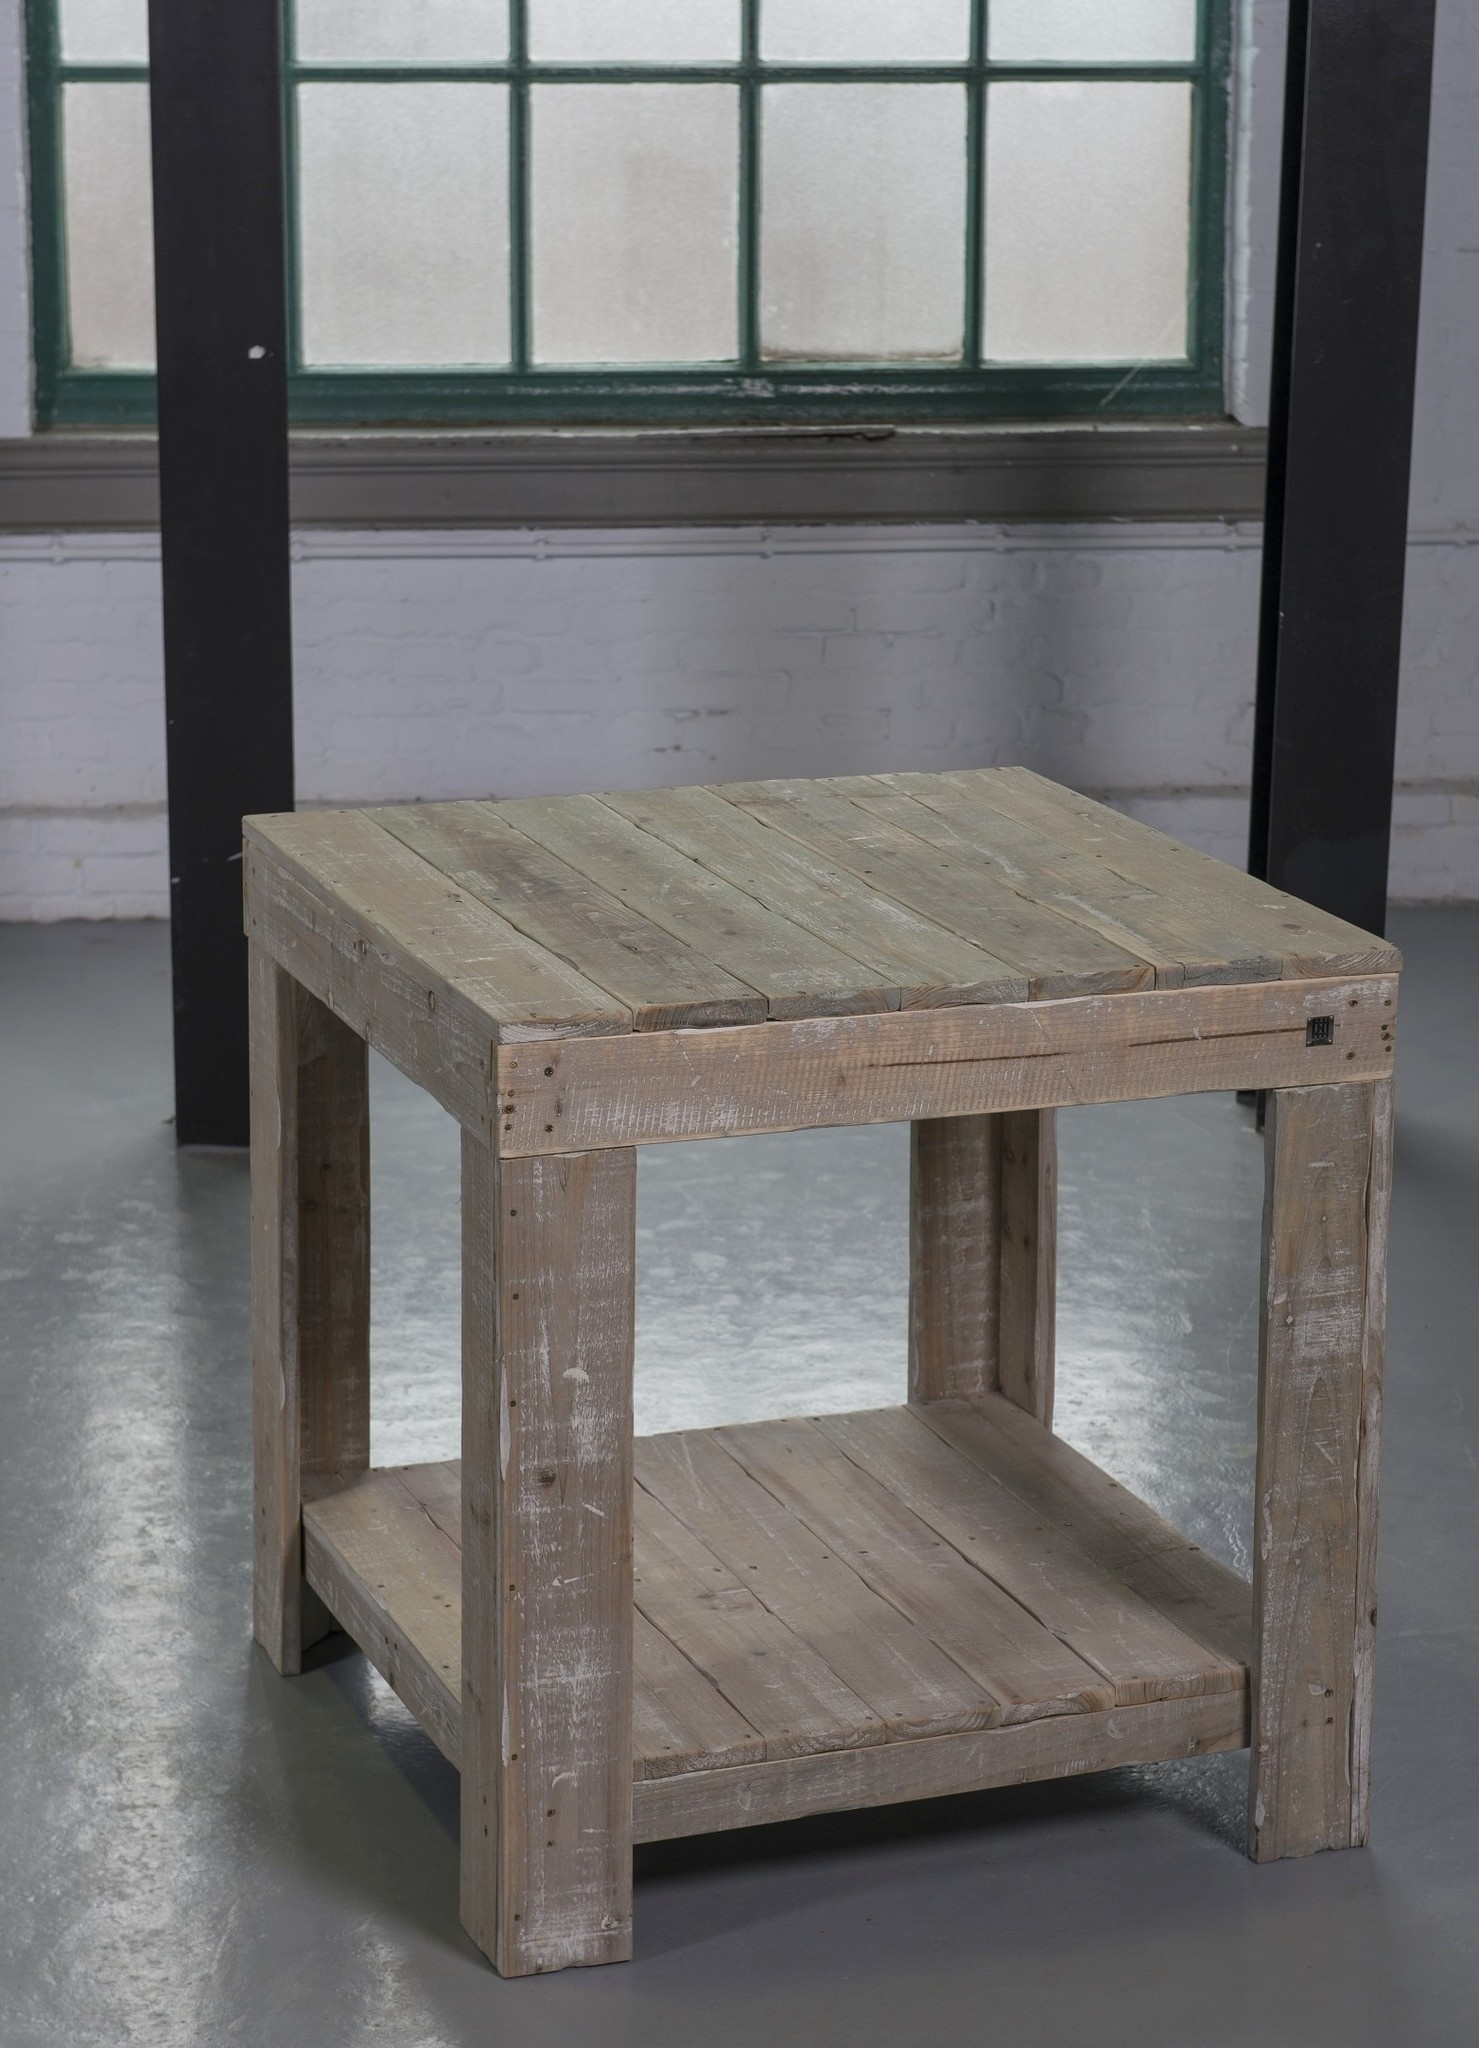 shop int old dutch table double 78-9